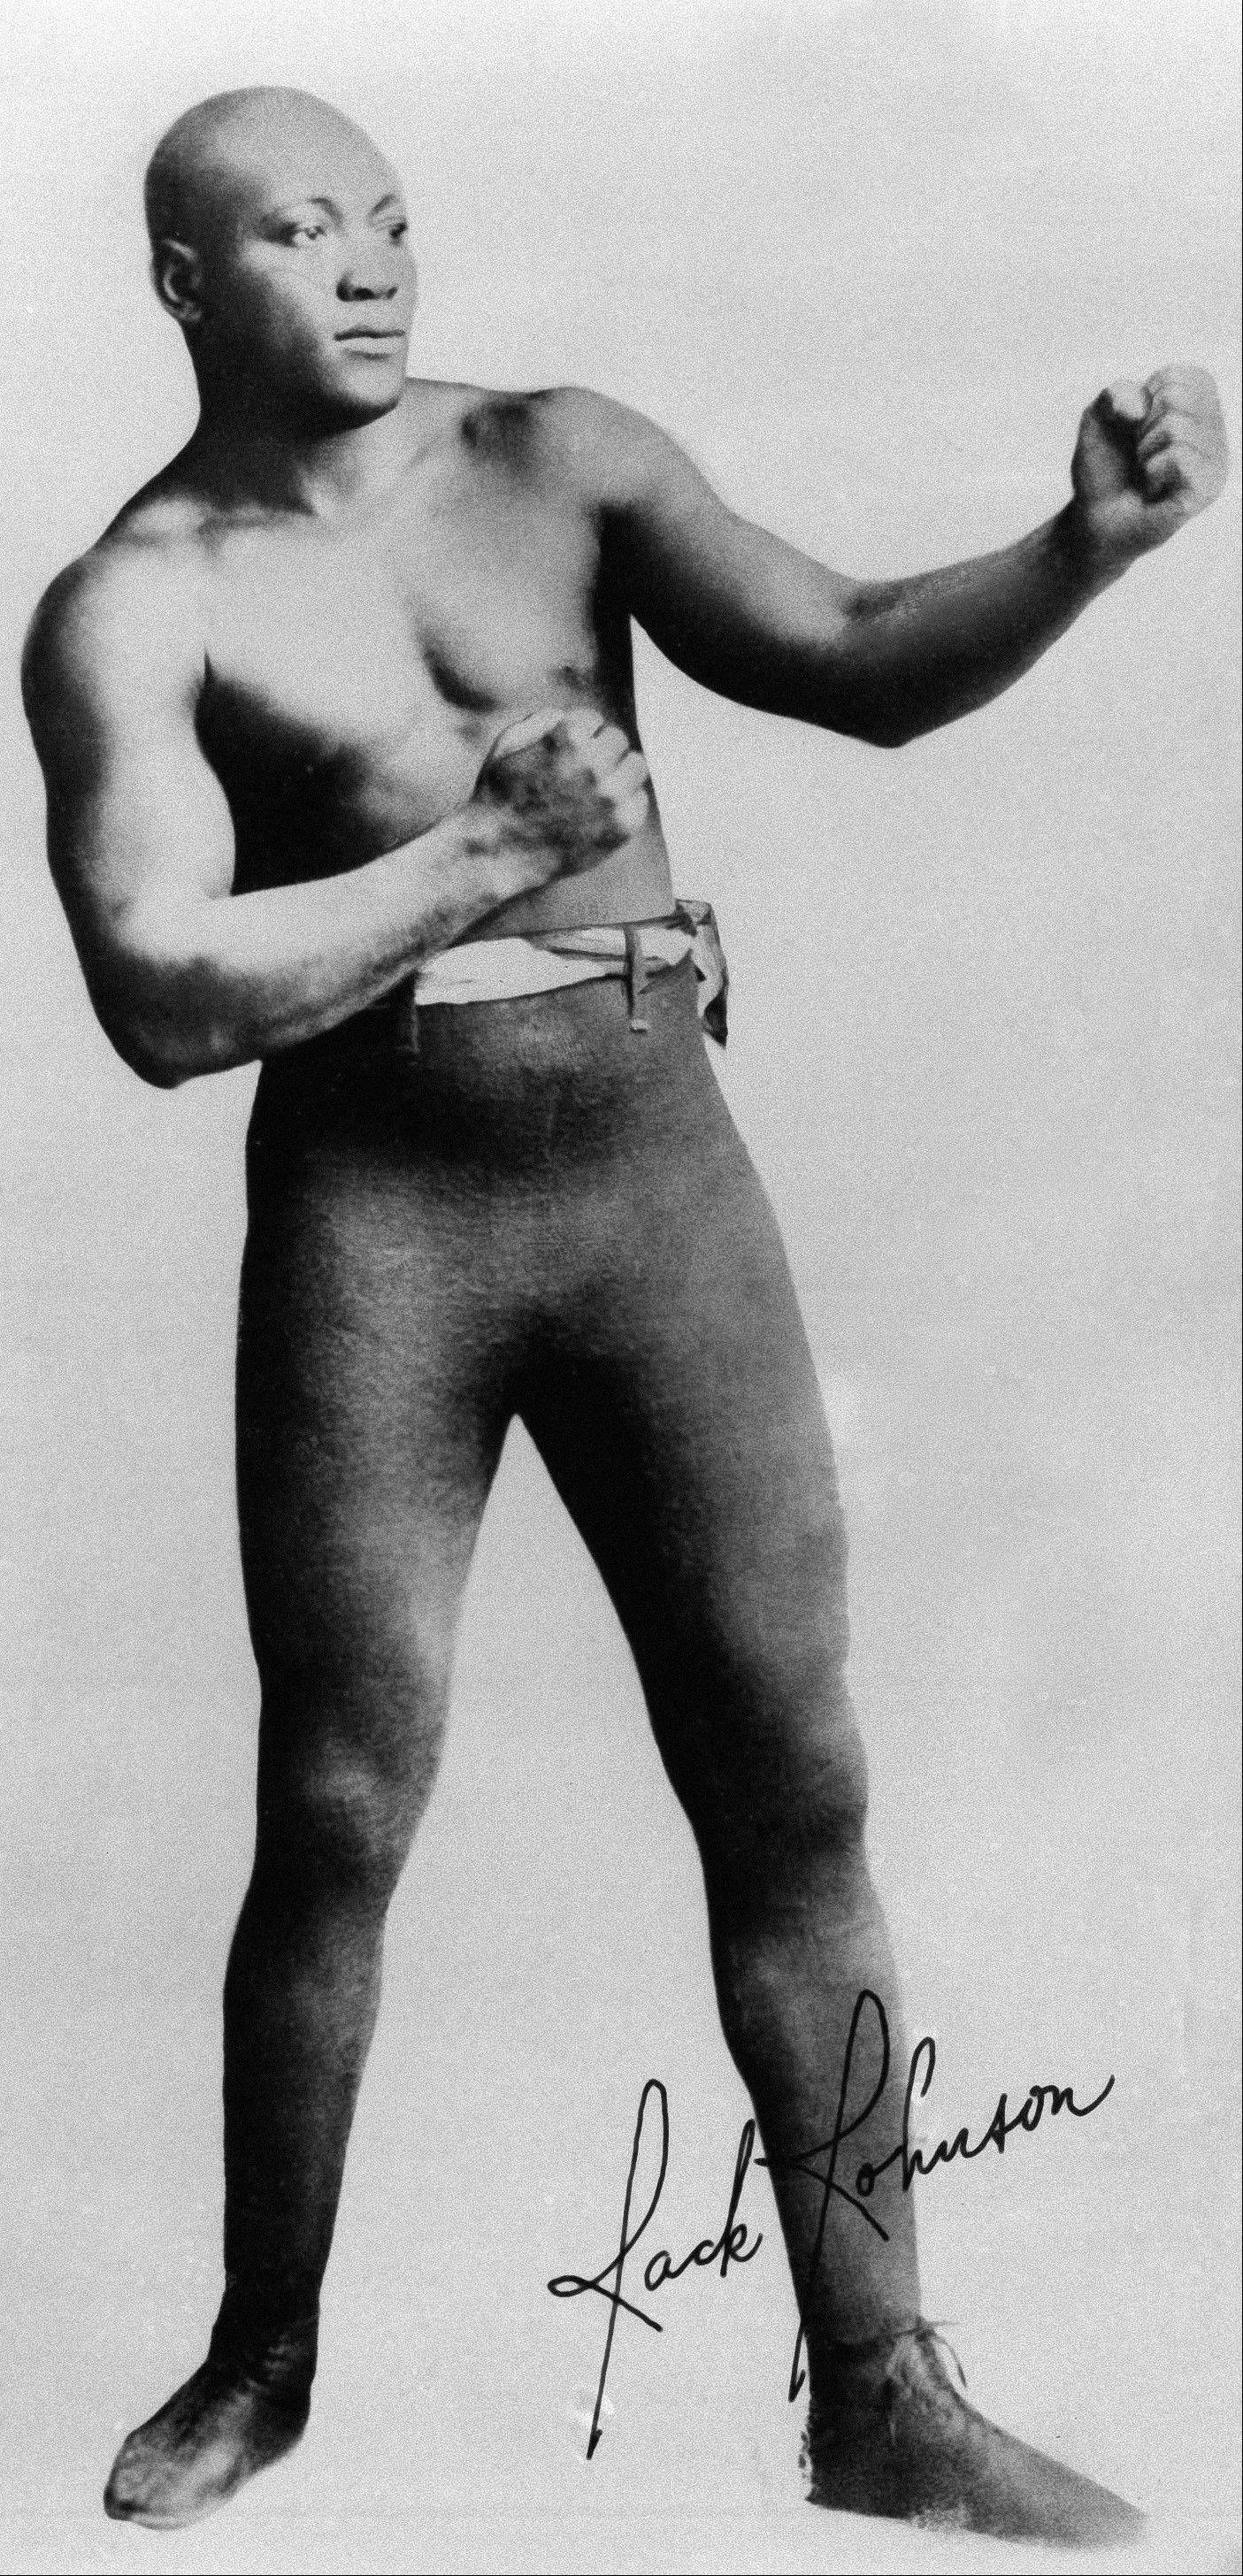 This is an undated file photo showing Jack Johnson. Lawmakers seeking a presidential pardon for Johnson, the world's first black heavyweight boxing champion imprisoned a century ago for his romantic relationships with white women, are renewing their efforts.